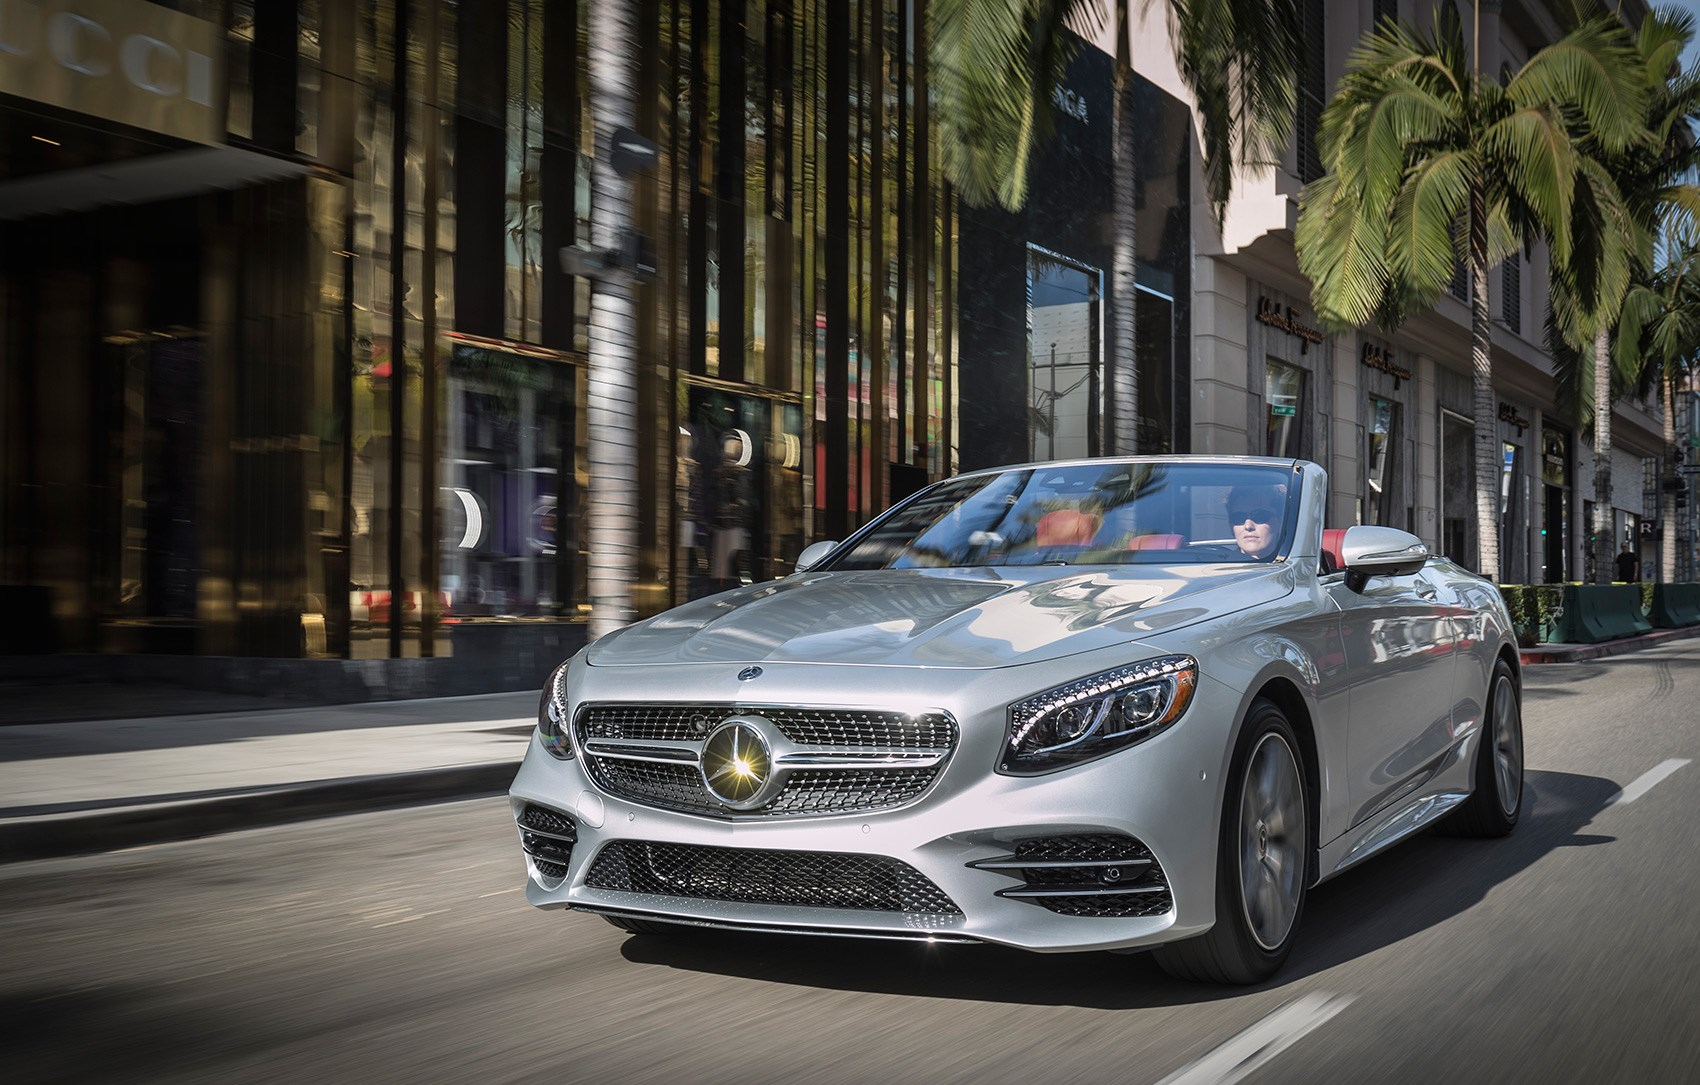 The CAR magazine Mercedes S-class Cabriolet review, including specs, prices and performance figures